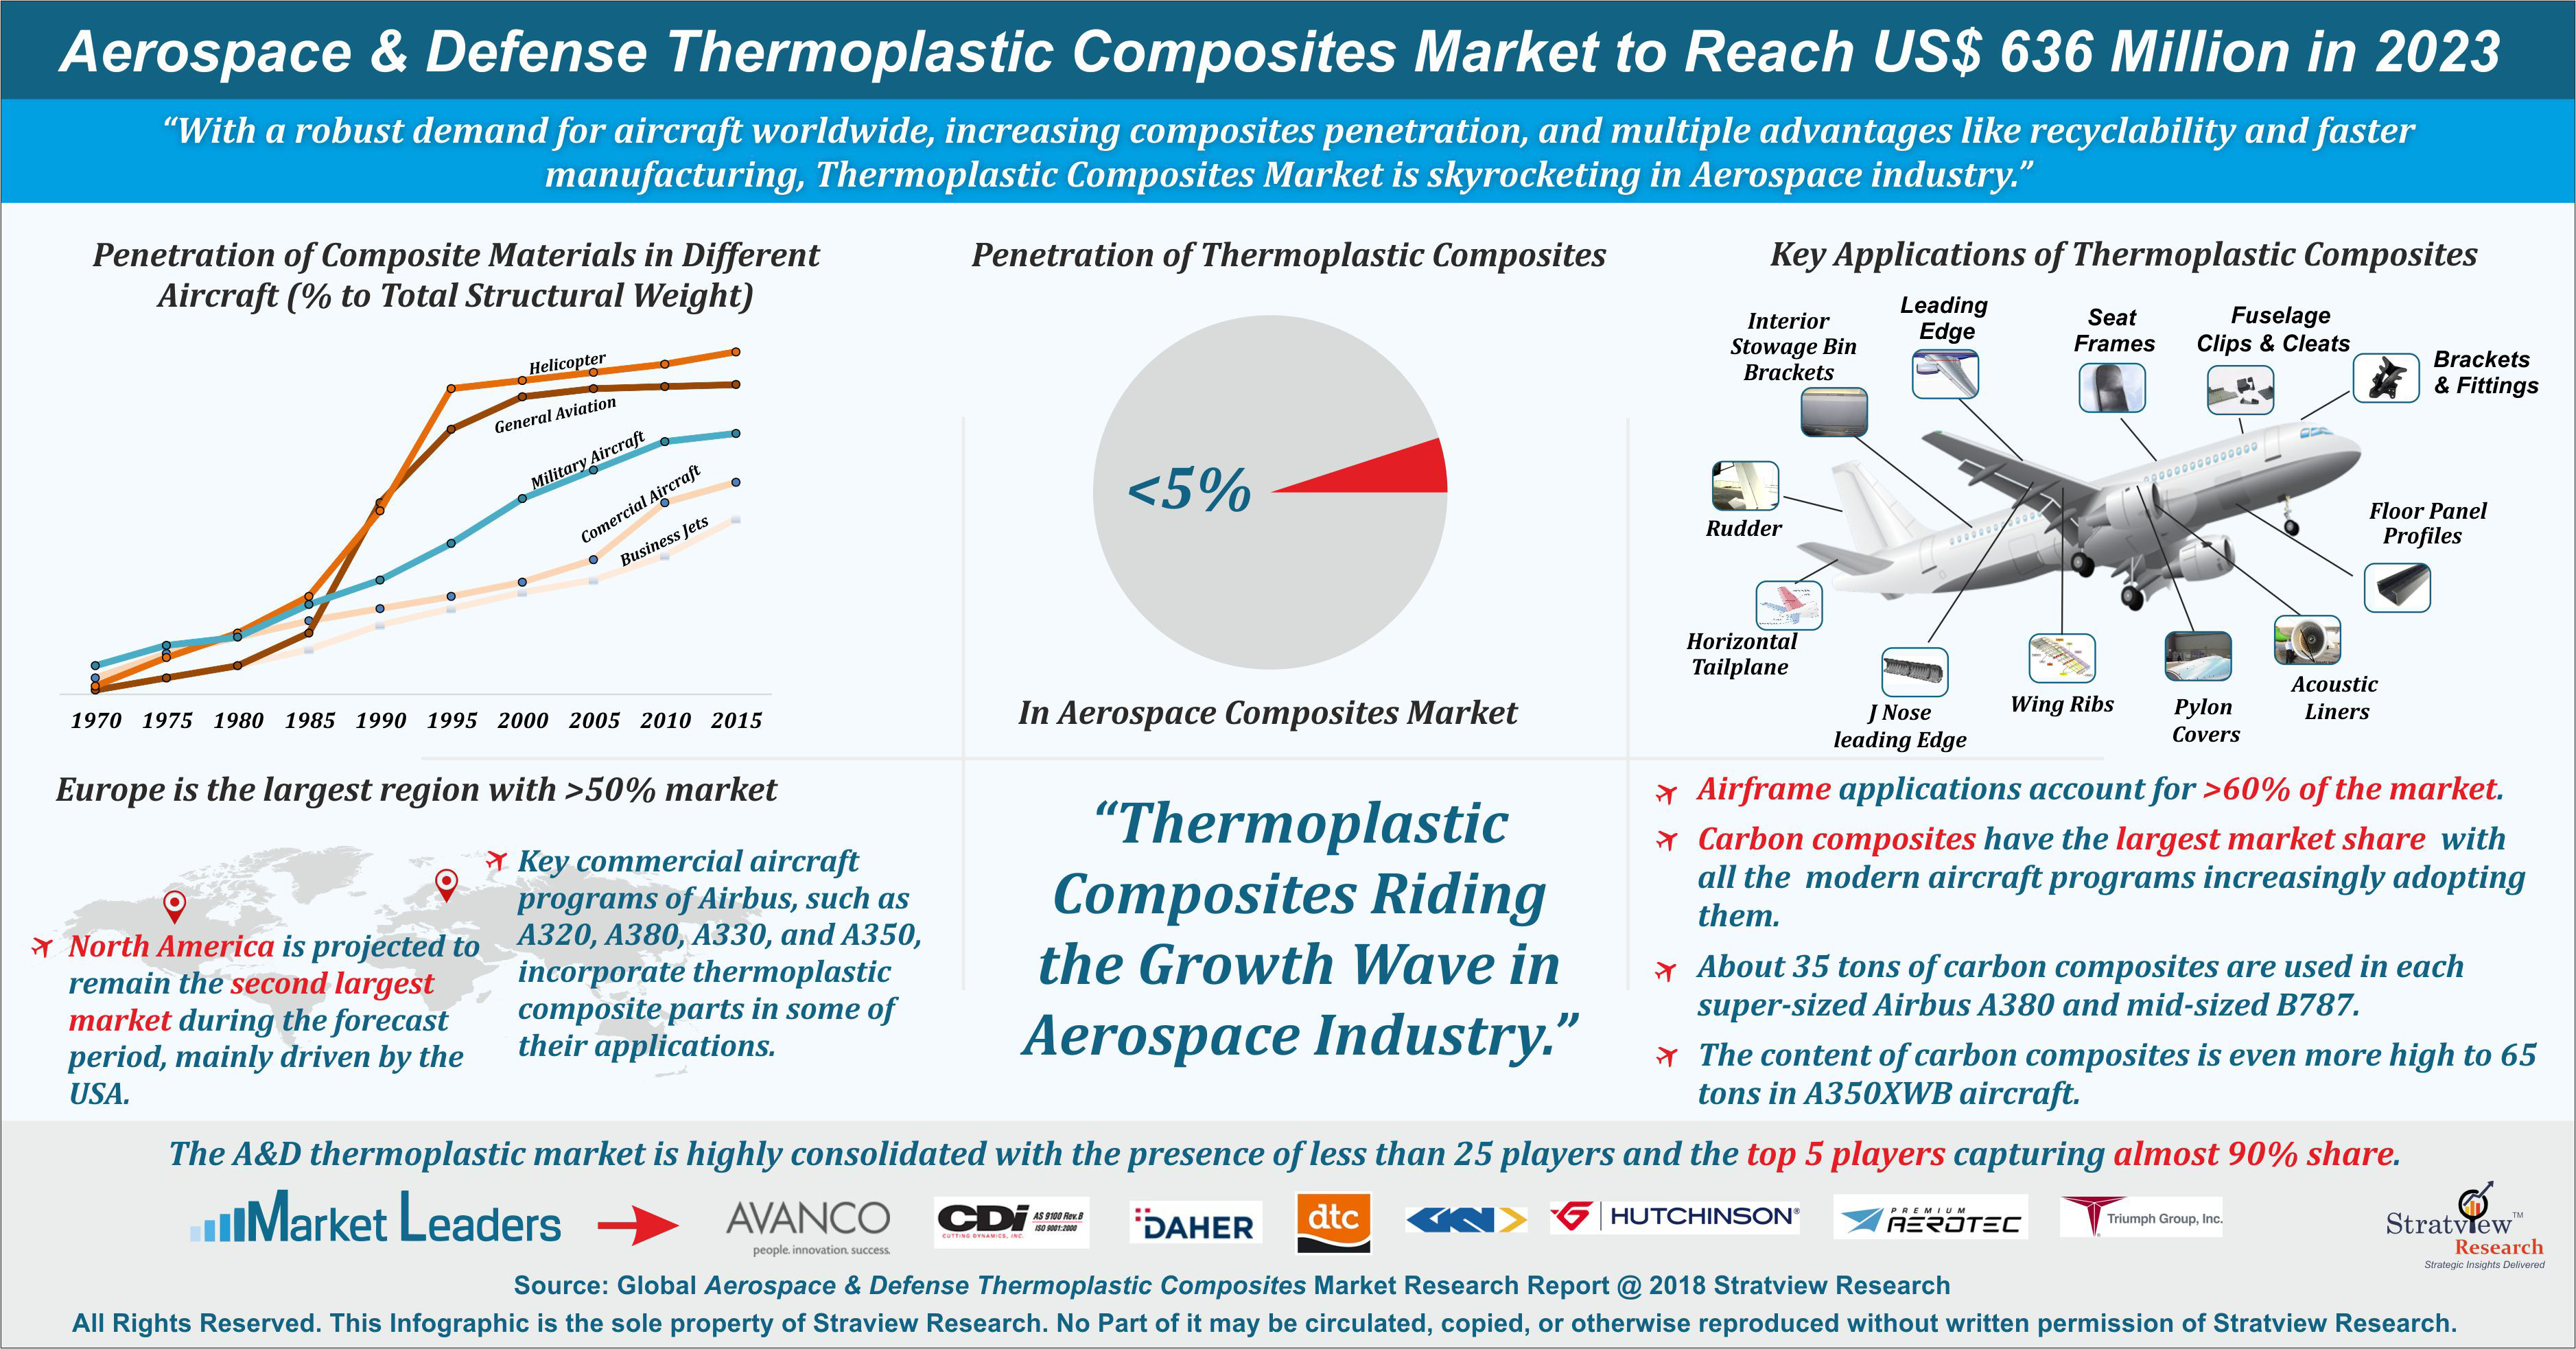 Aerospace Thermoplastic Composites Market